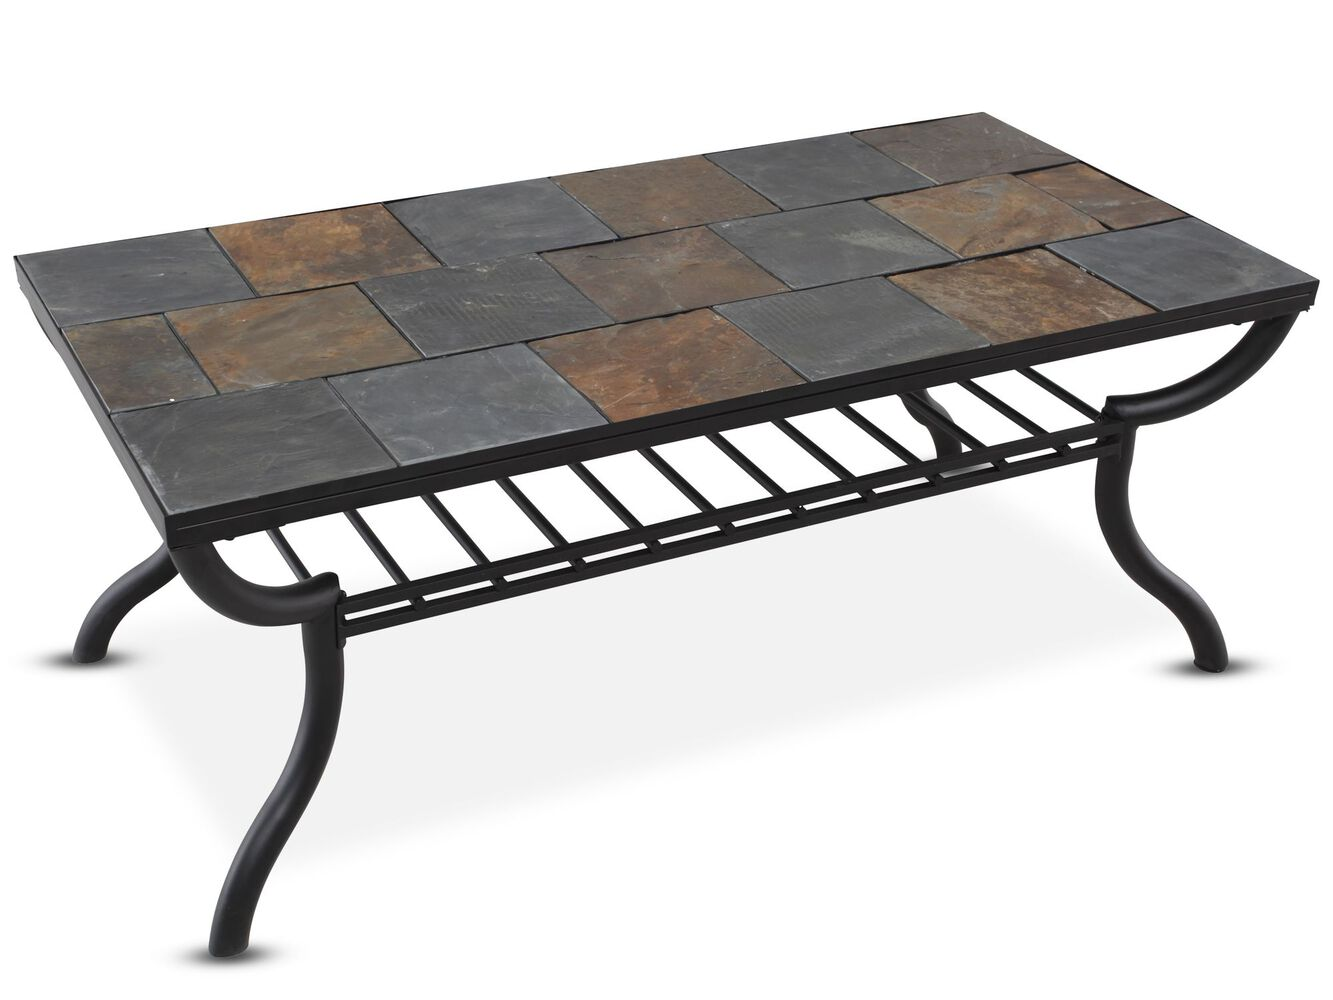 Tile top rectangular cocktail table in gunmetal mathis for Html table th always on top